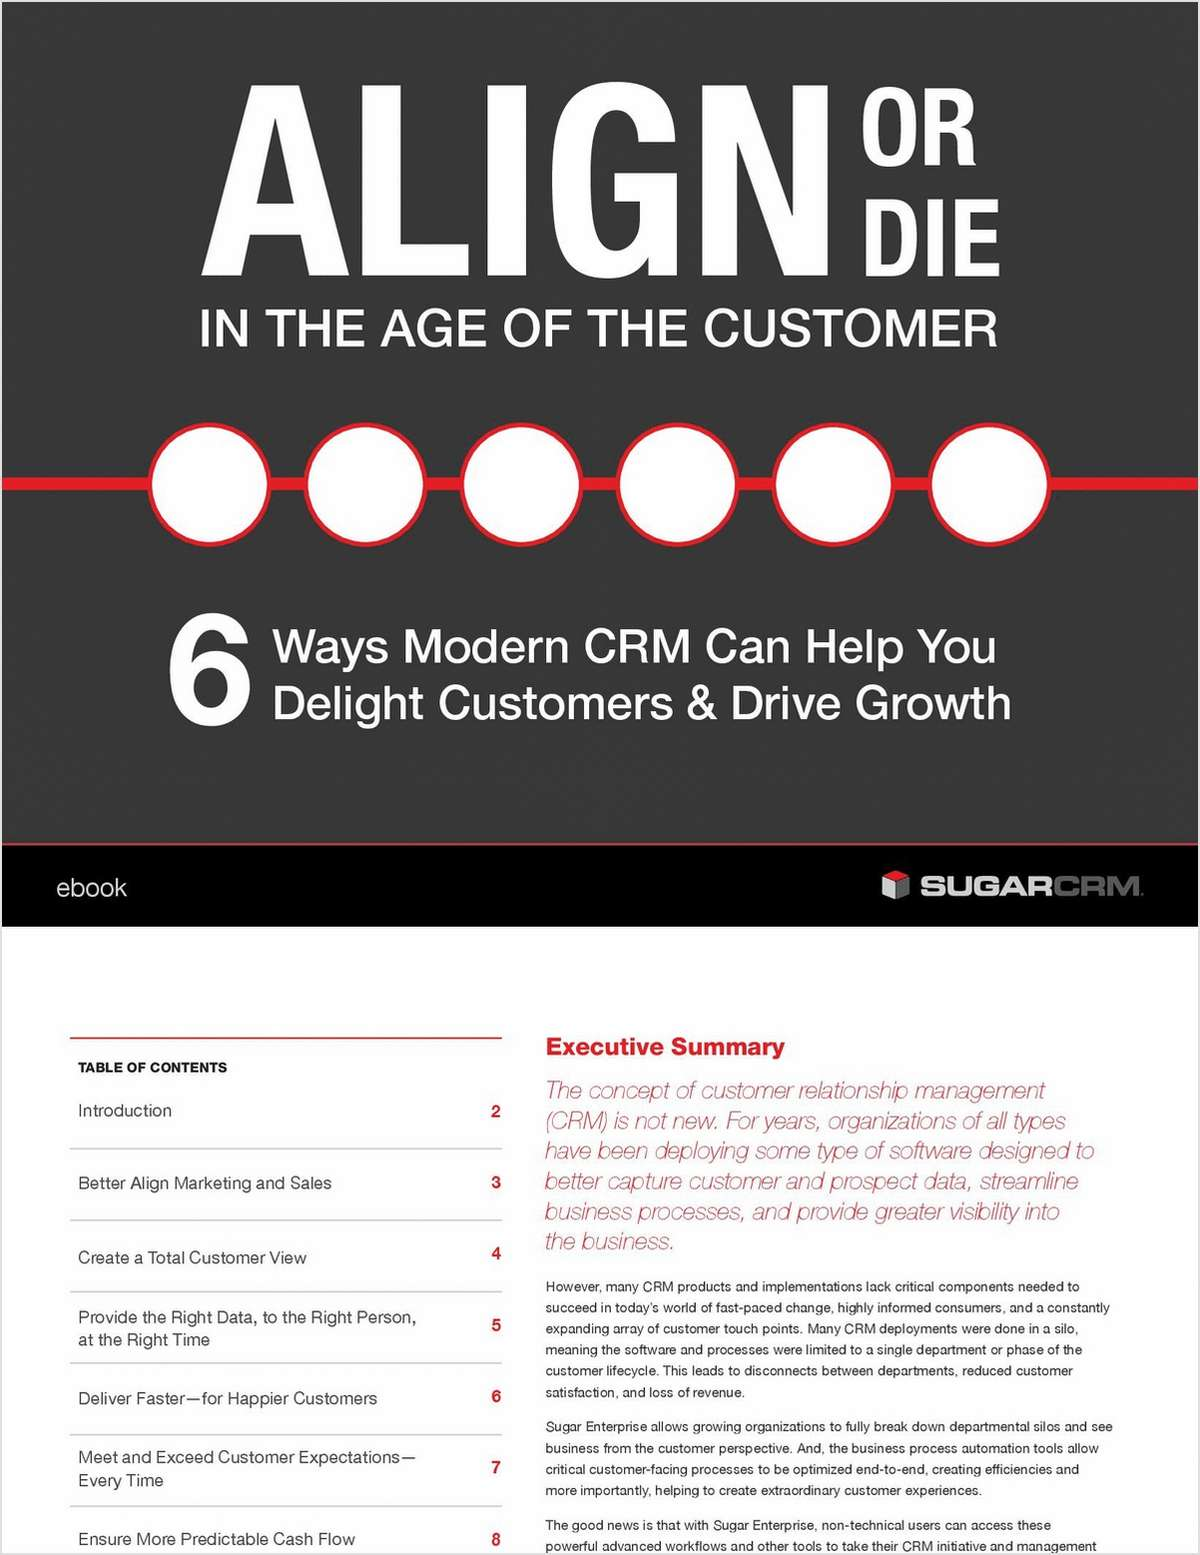 Align or Die in the Age of the Customer